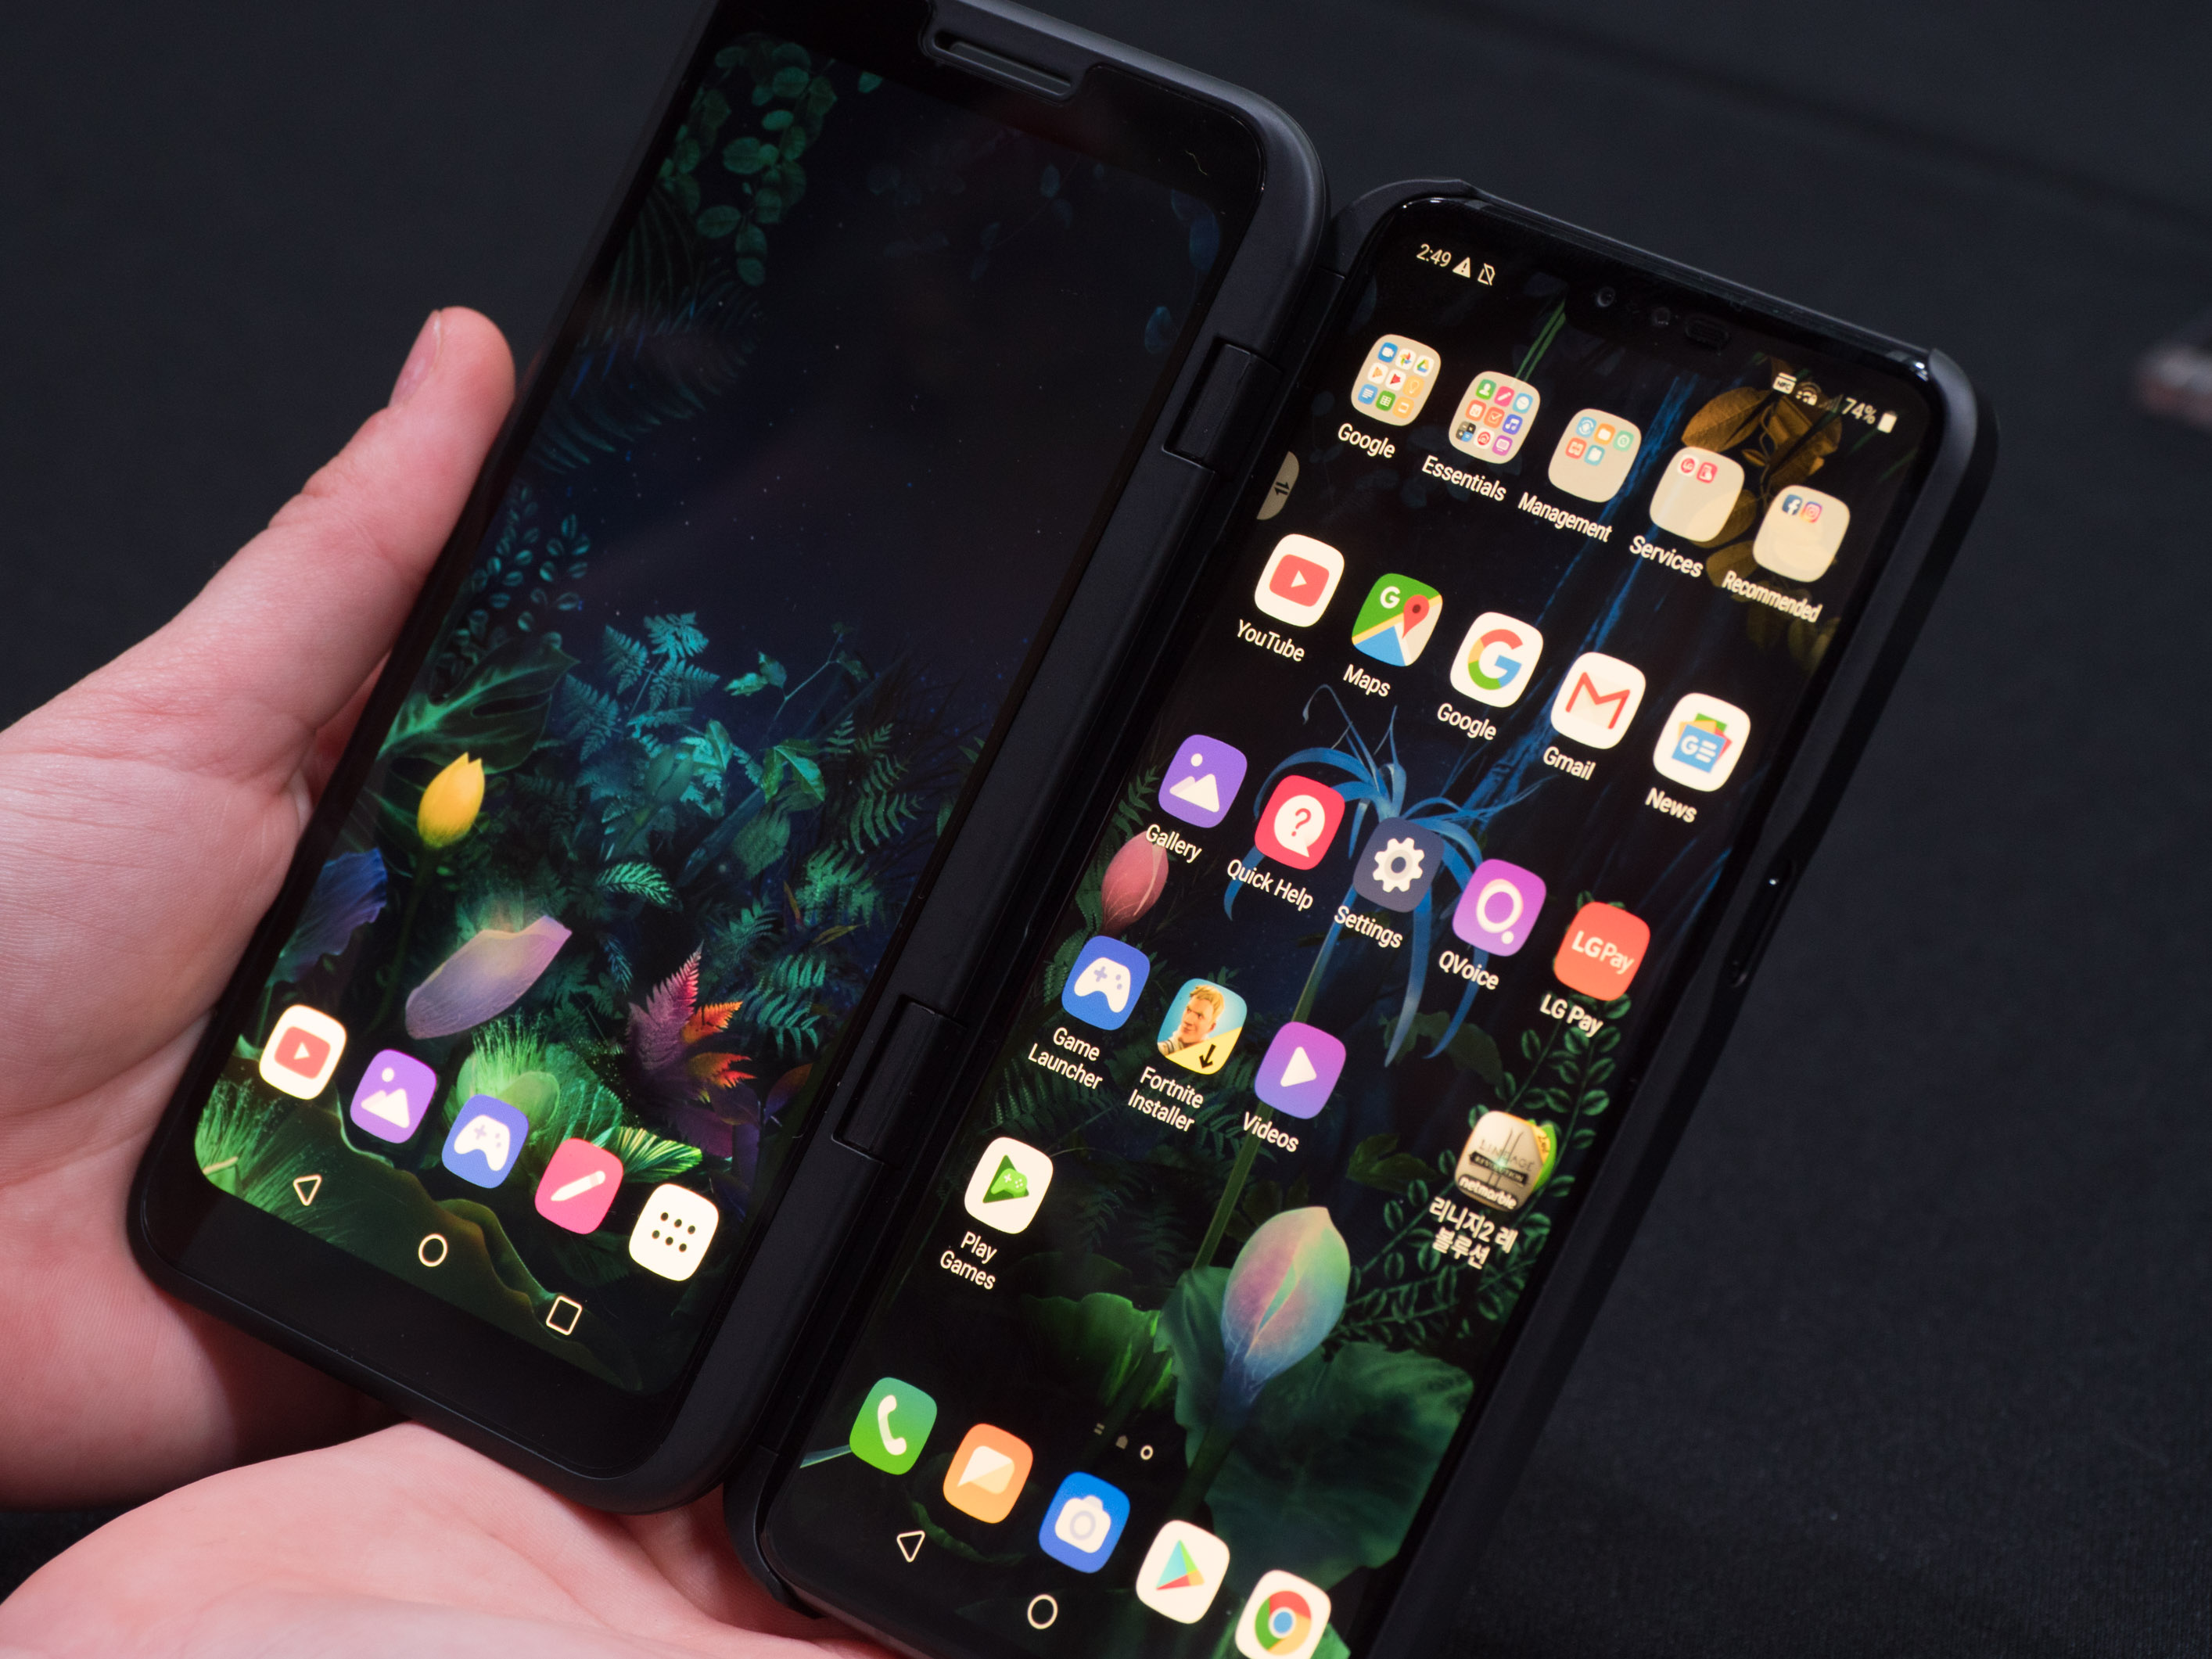 V50 Thinq Dual Screen im Hands on: LG zeigt Smartphone mit andockbarem Zusatzdisplay - LG V50 Thinq mit Dual Screen (Bild: Martin Wolf/Golem.de)